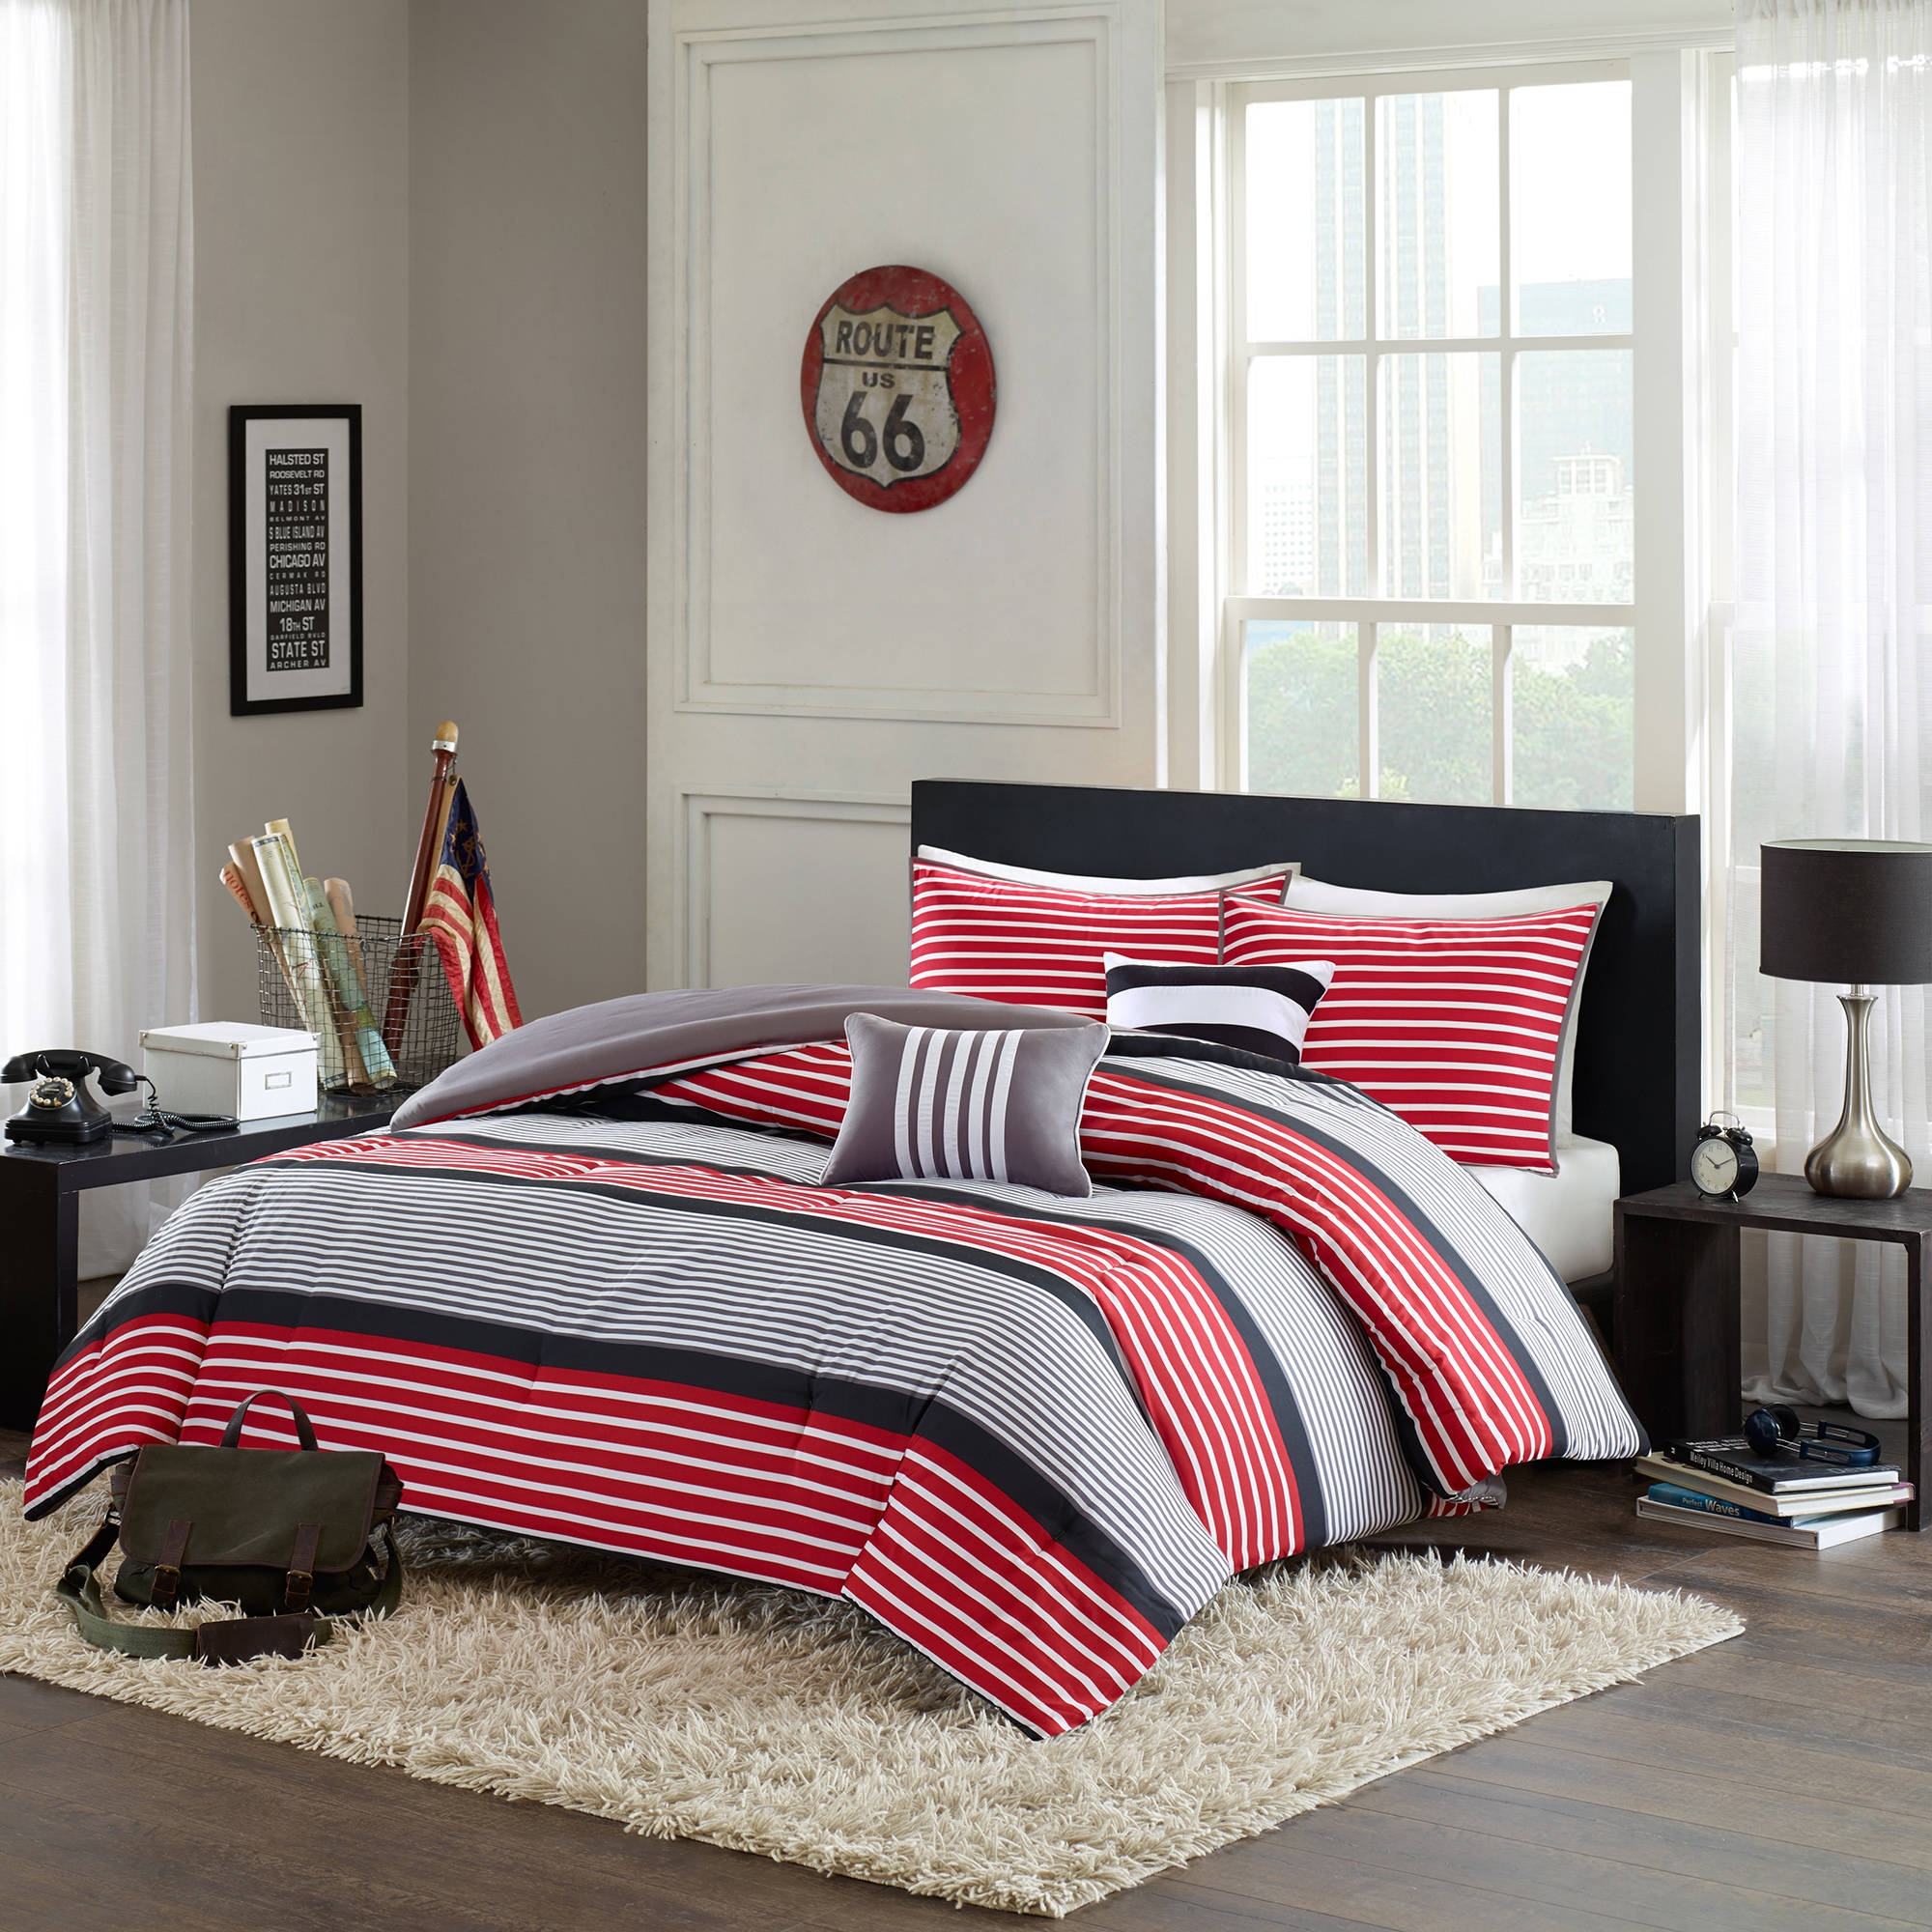 Home Essence Apartment Blain Comforter Set